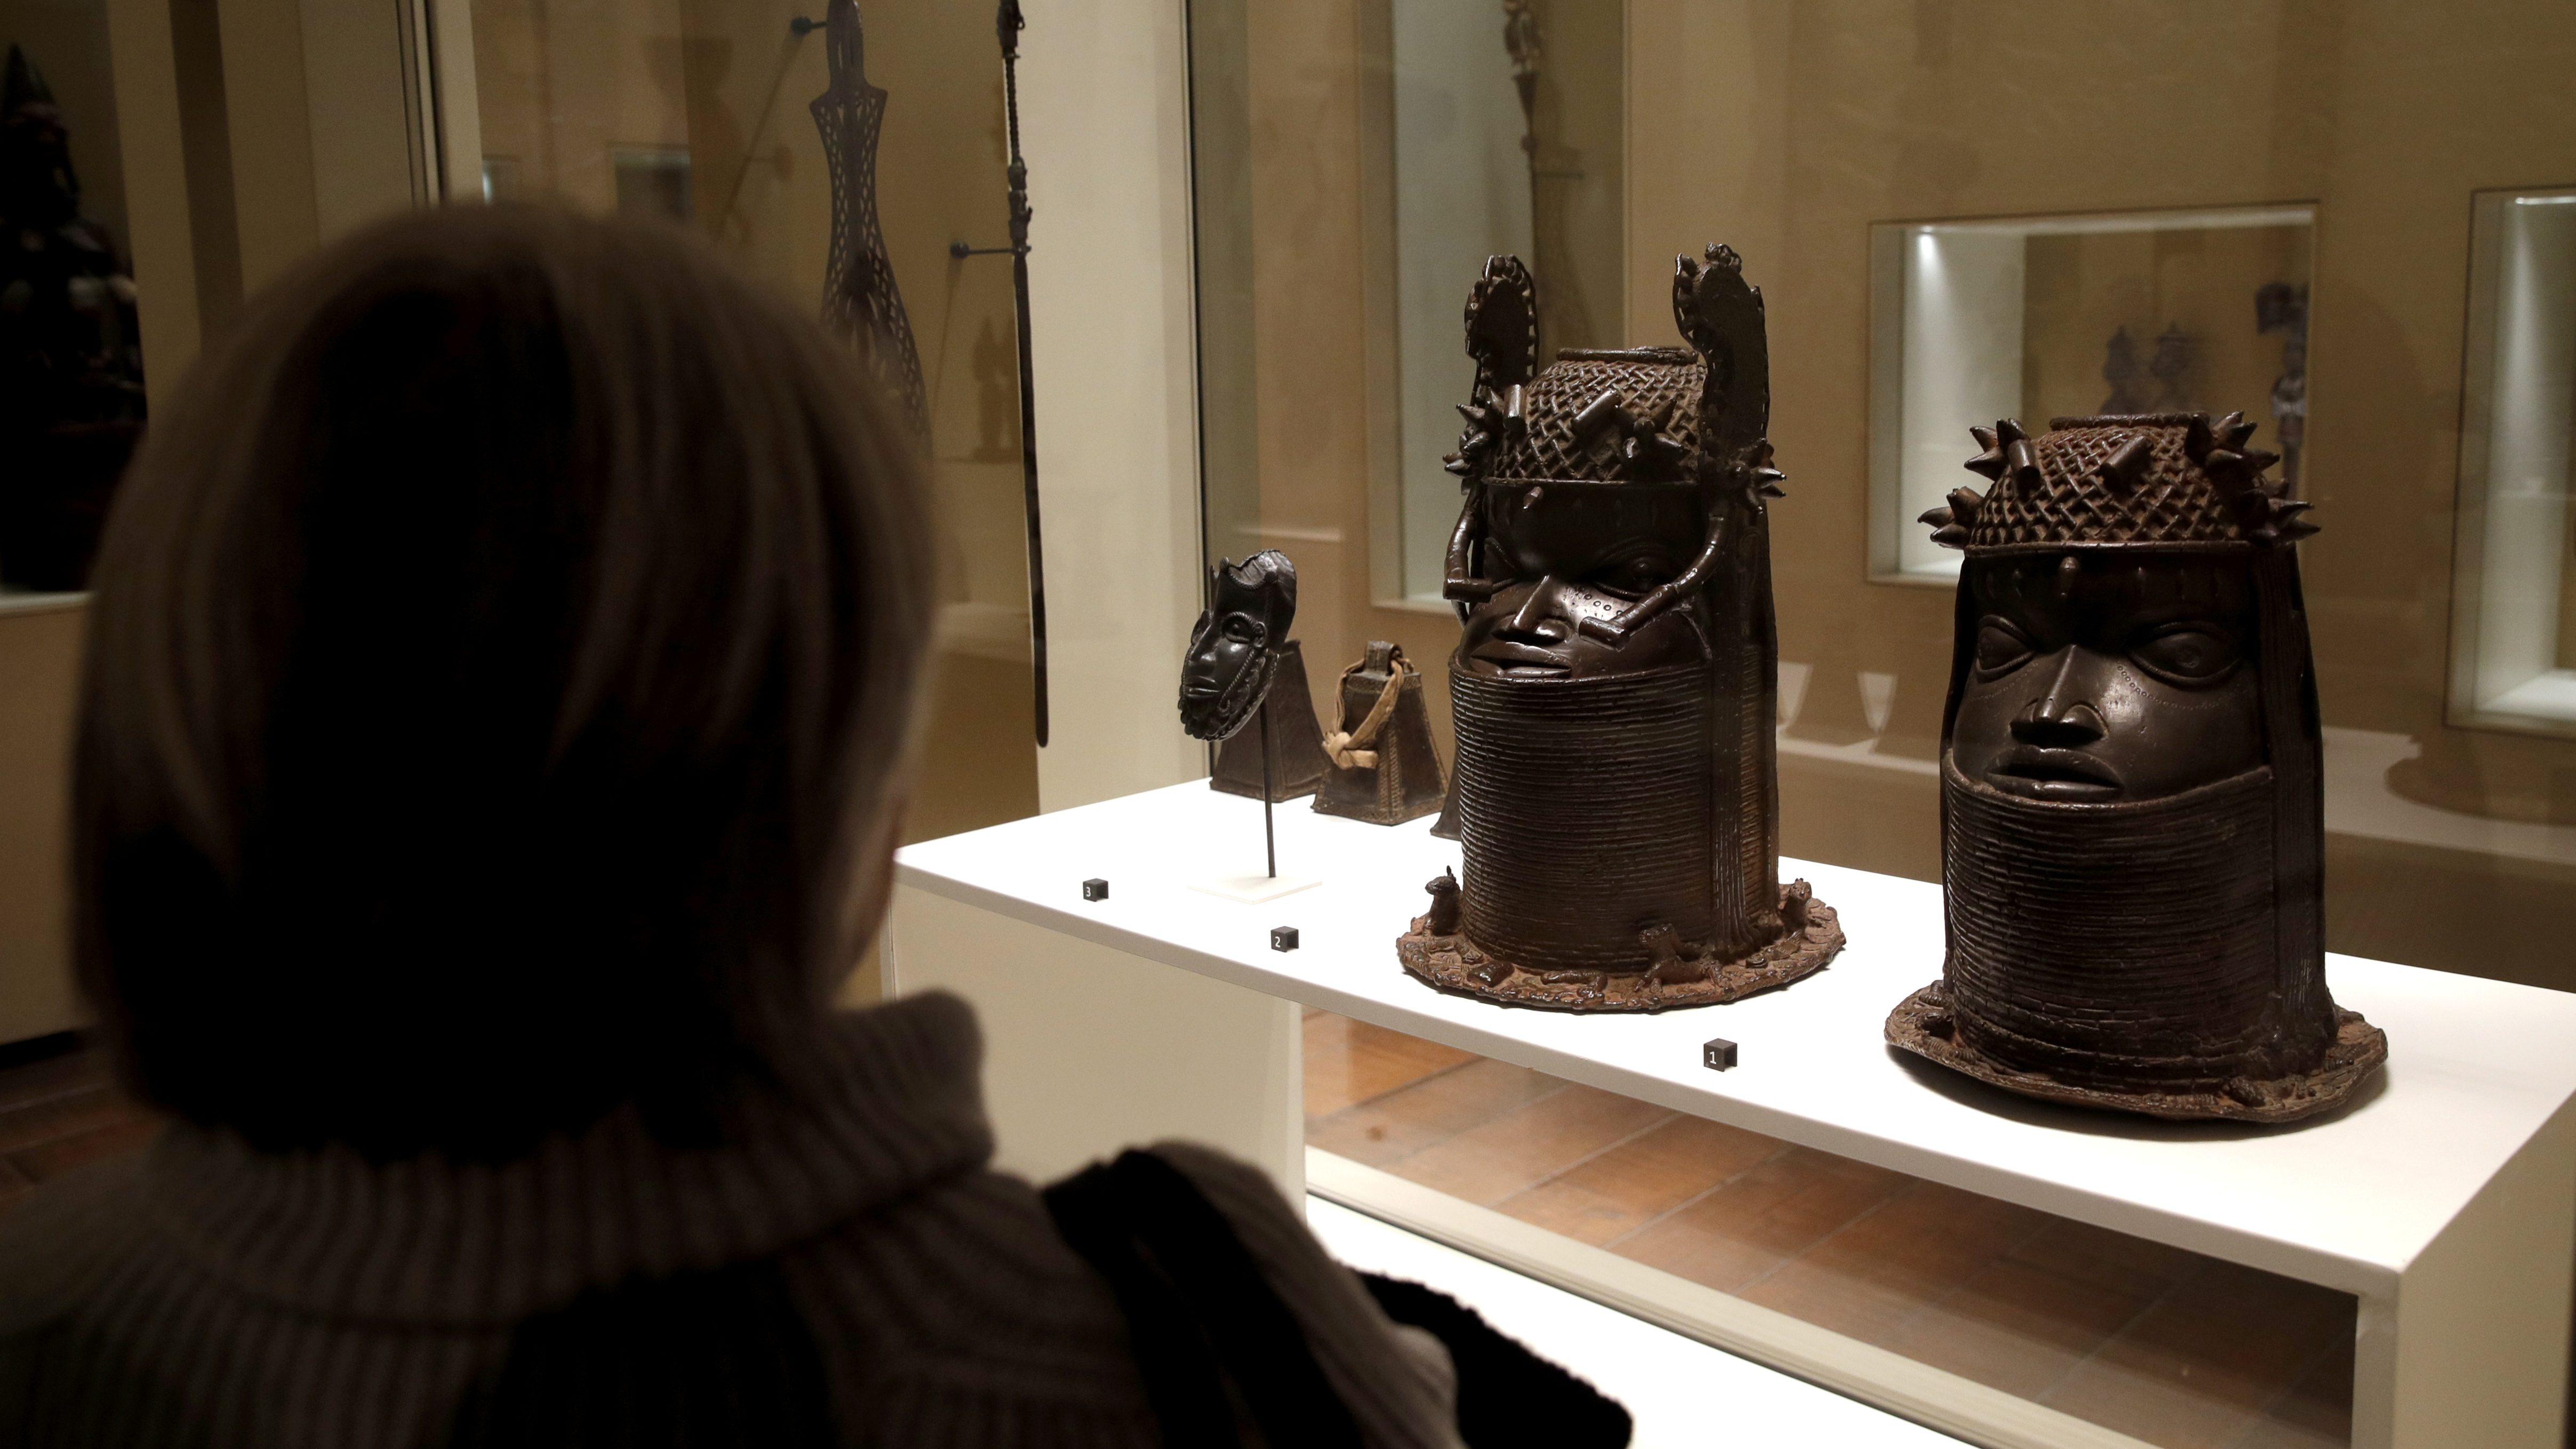 Europe's museums are fighting to keep Africa's stolen artifacts